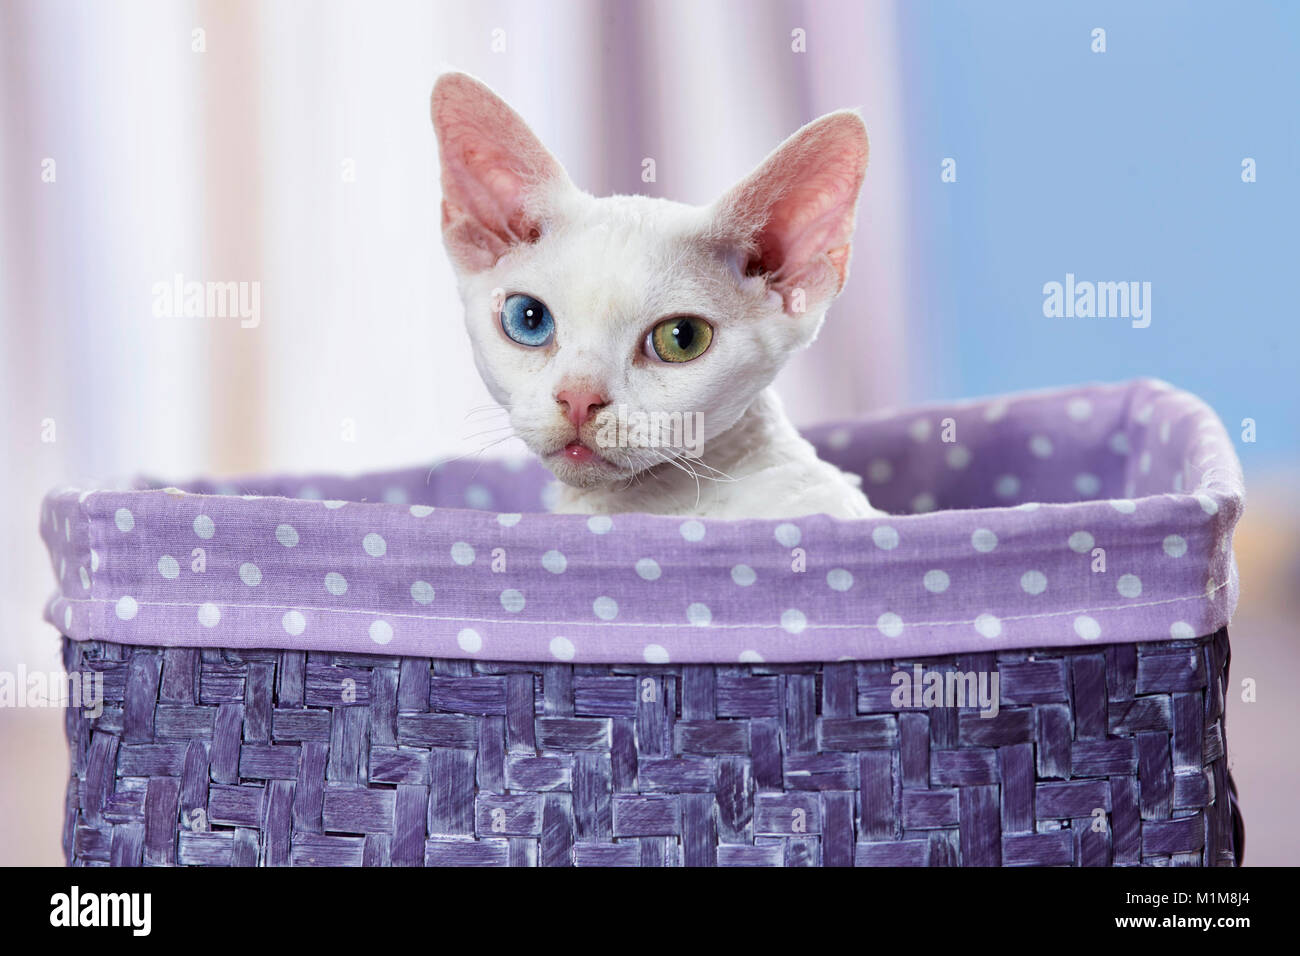 Devon Rex. Kitten with eyes of different color, sitting in a basket. Germany - Stock Image